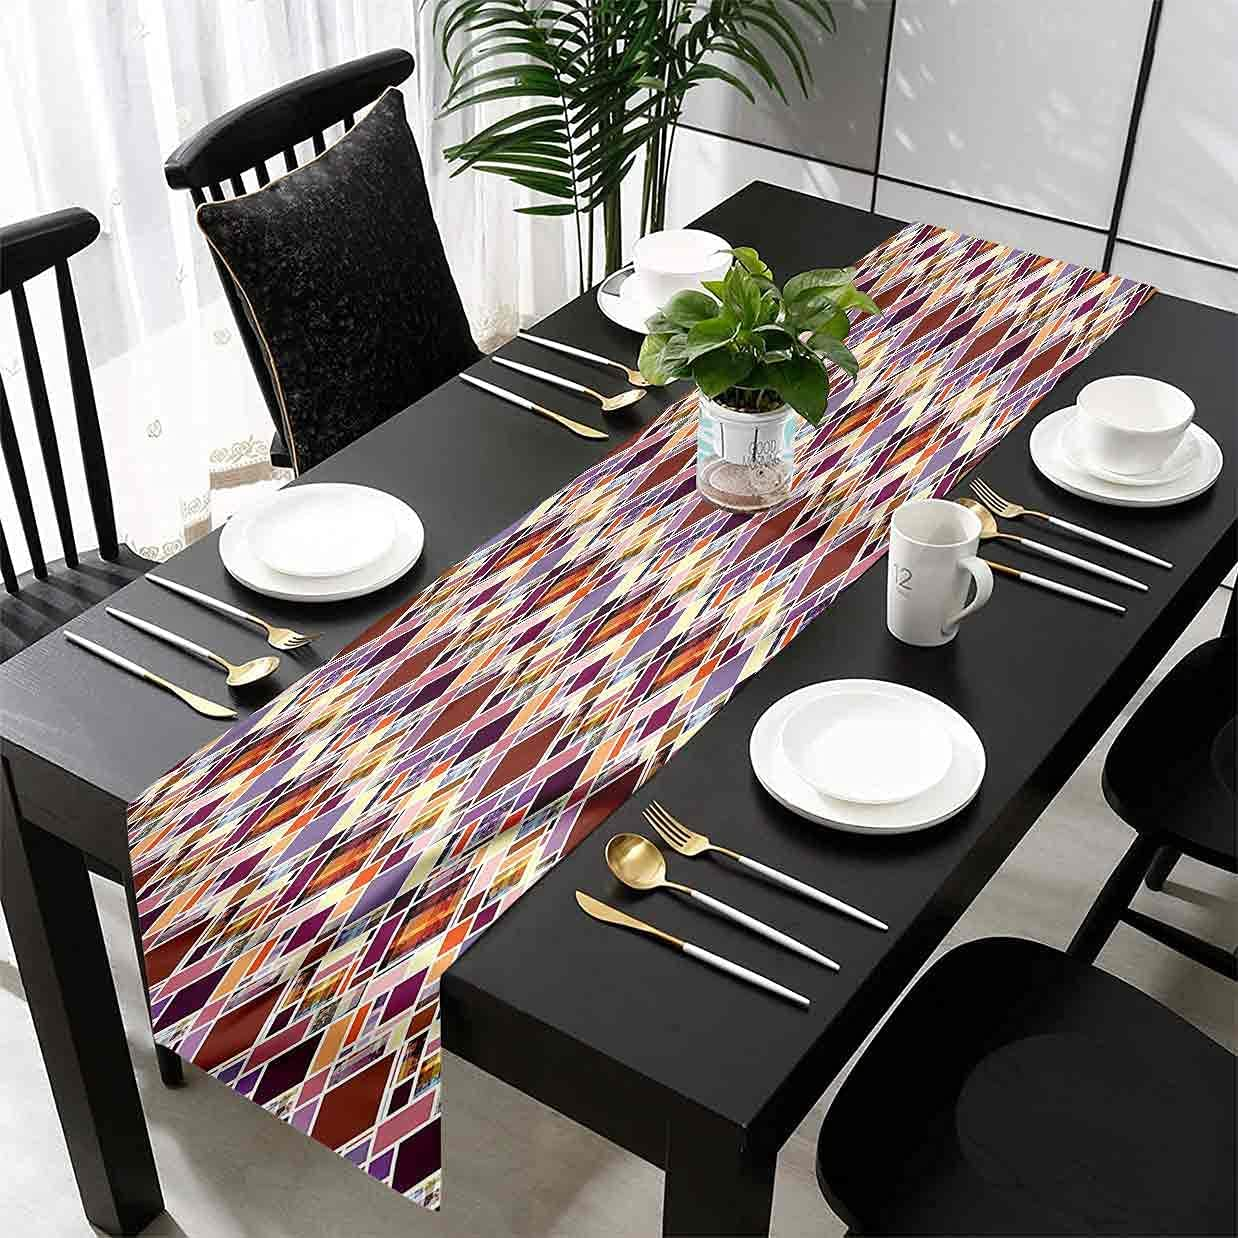 Hiiiman Geometric Table Runner Rectangles and Be super welcome Squares Rapid rise Decoratio